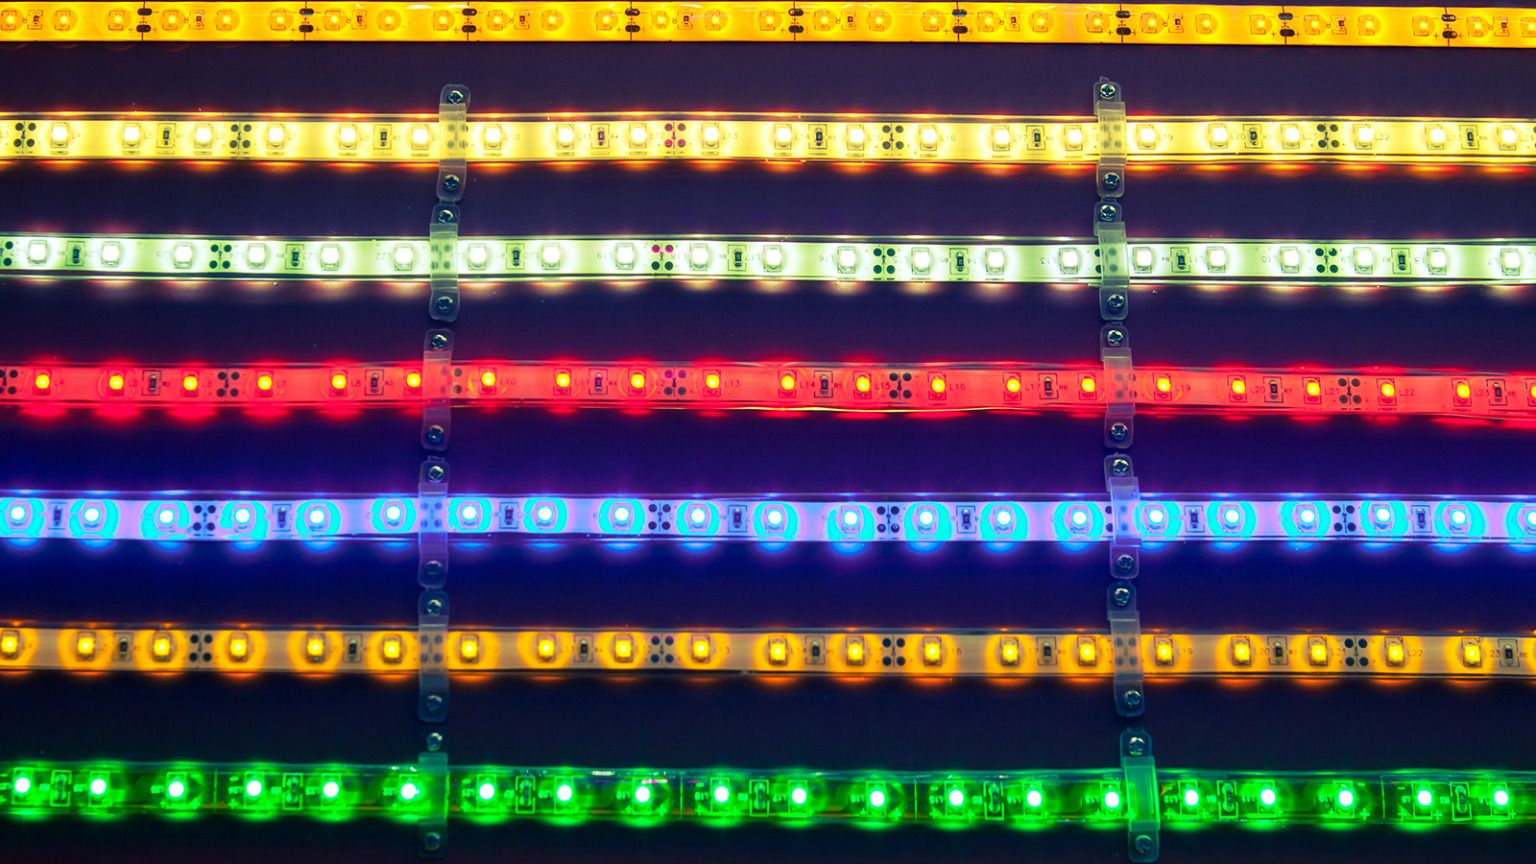 Grow better veggies with LED lights | Grist 072415